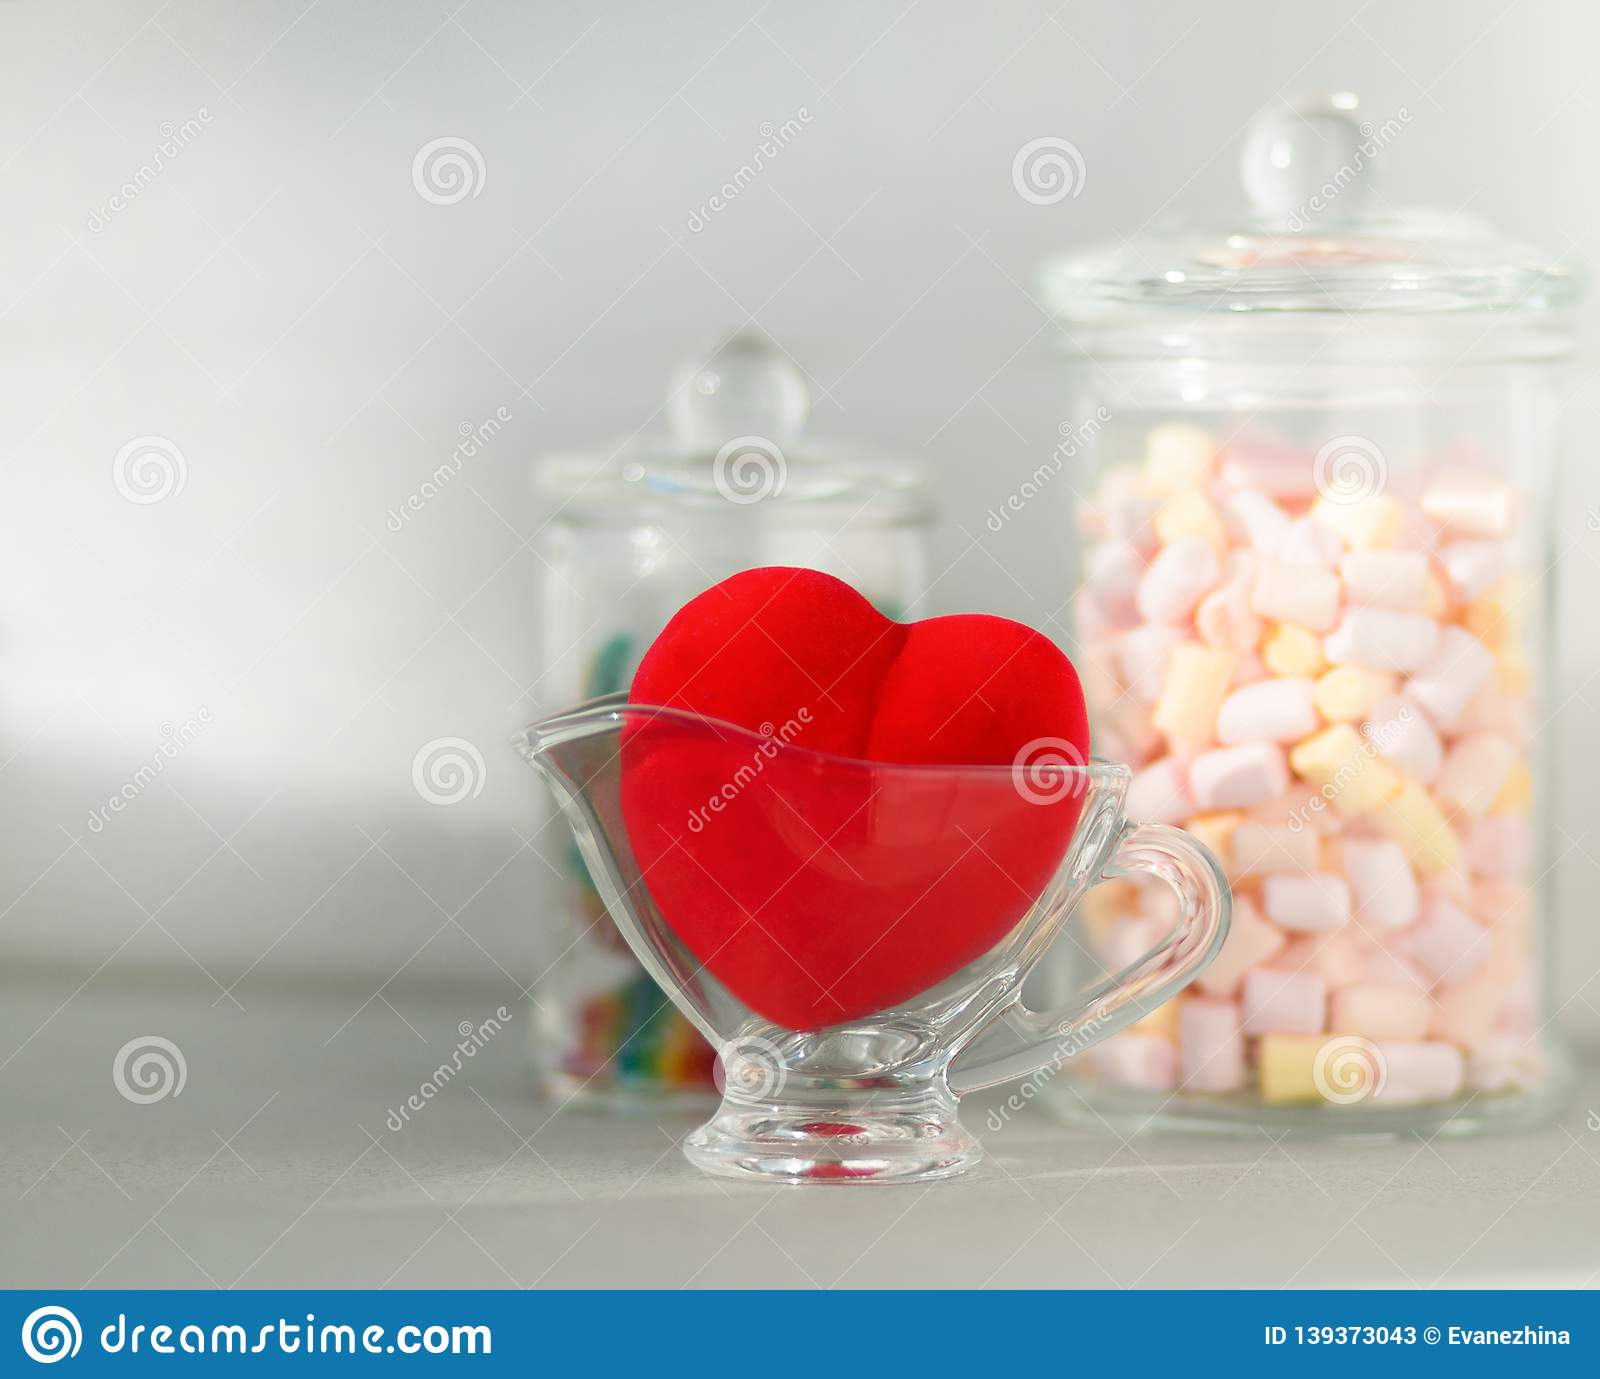 Red Heart Velvet with marshmallows and fruit jelly in glass